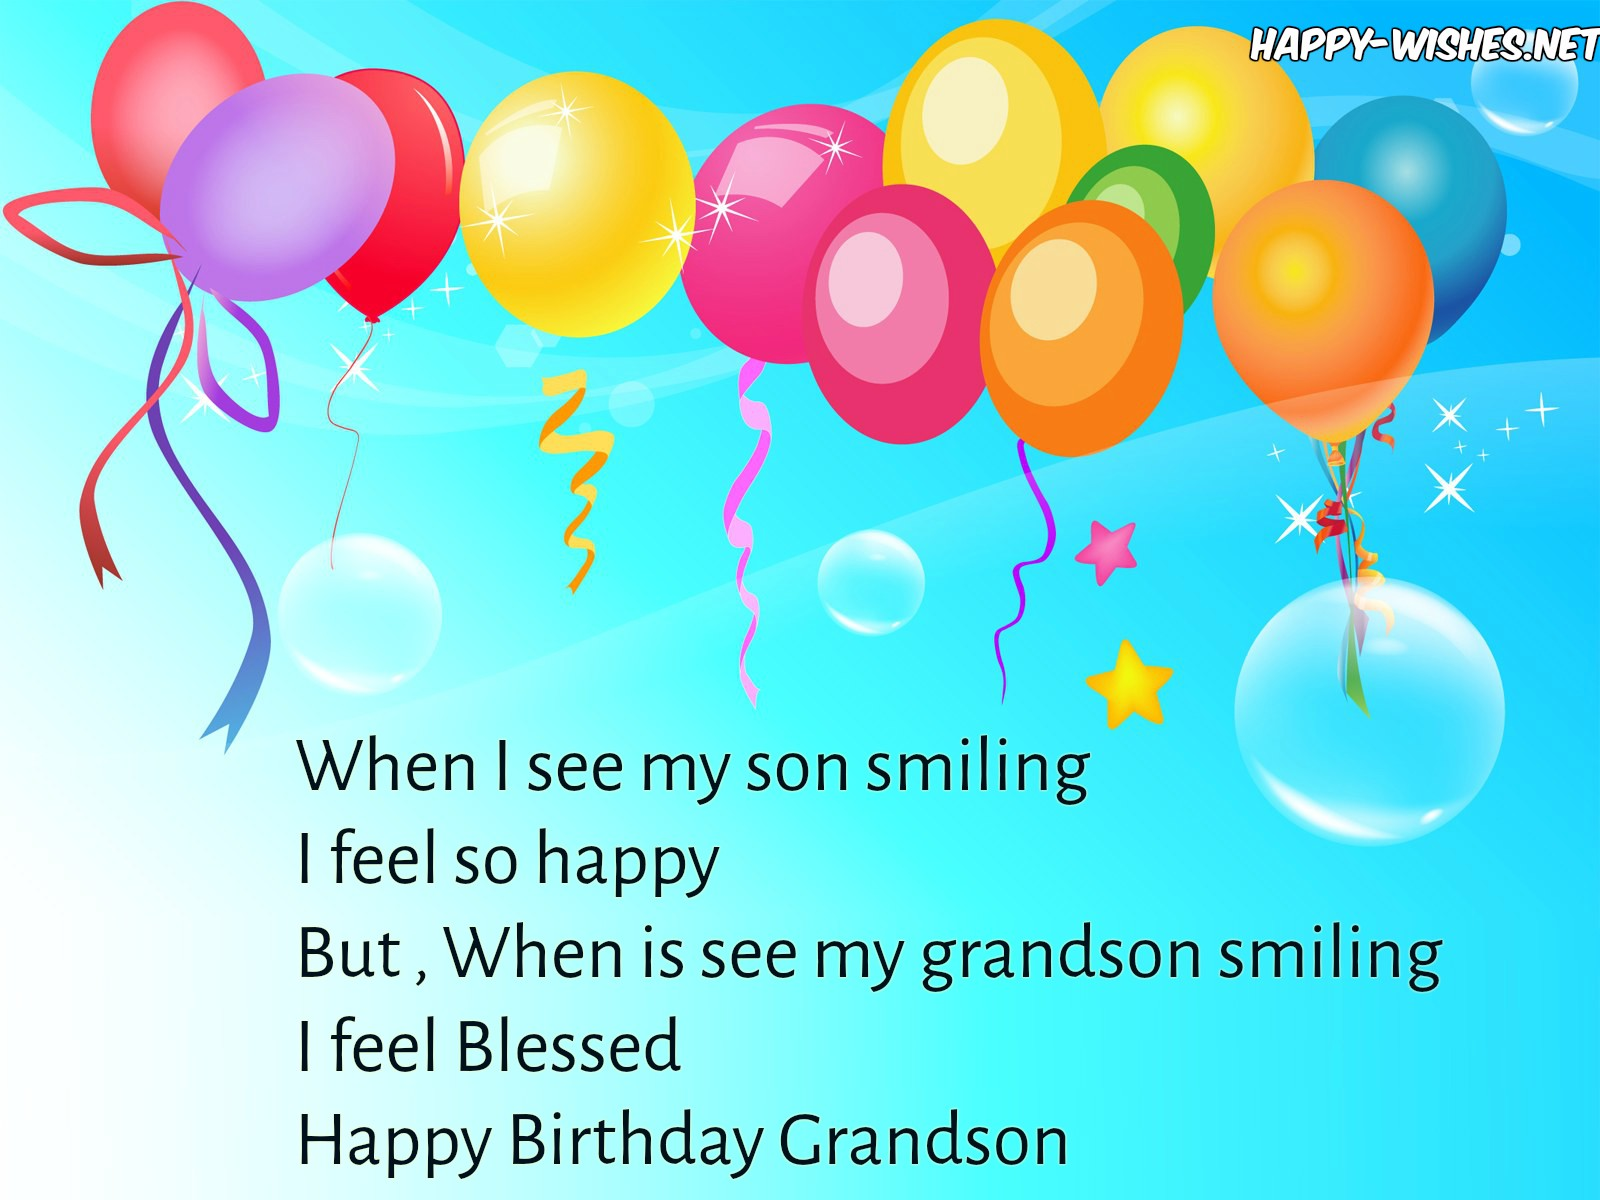 happy birthday to my grandson images ; 4HappyBirthdaywishesforgrandson-compressed